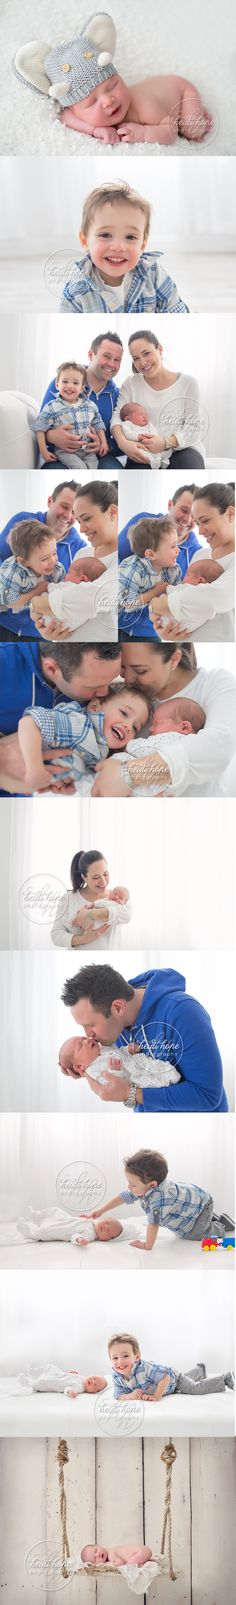 Newborn baby N is welcomed by his big brother in a newborn and family portrait session. #familyportraits #newborn #newbornswing #bigbrother #elephantbeanie #newbornsession #timeless #siblings